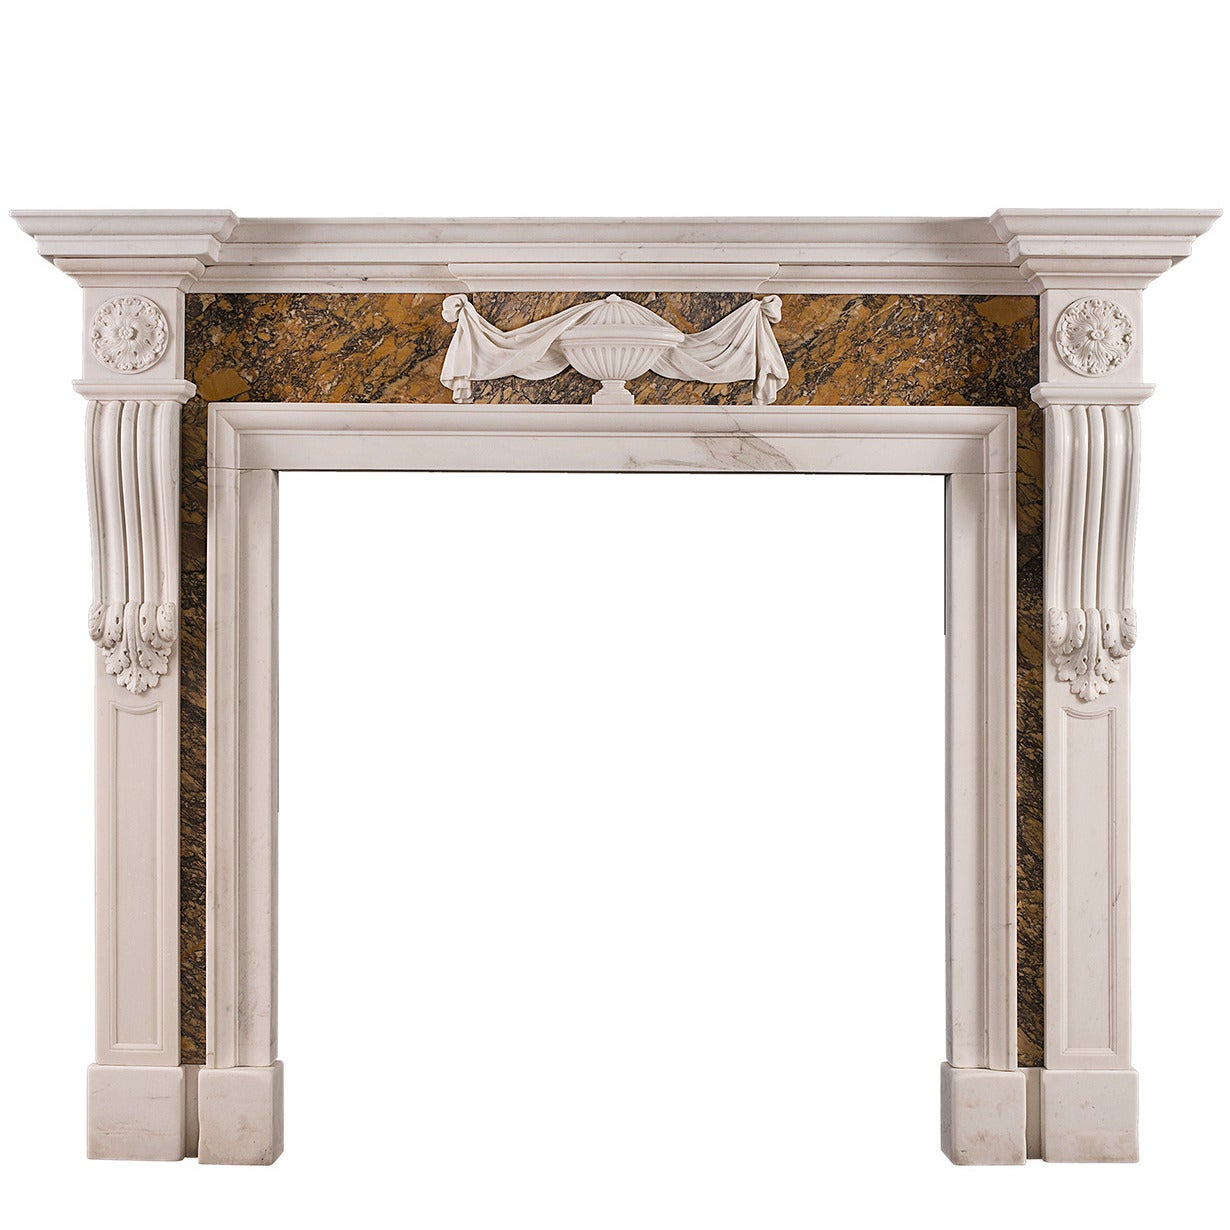 Georgian Style Chimneypiece in Statuary and Siena Marble